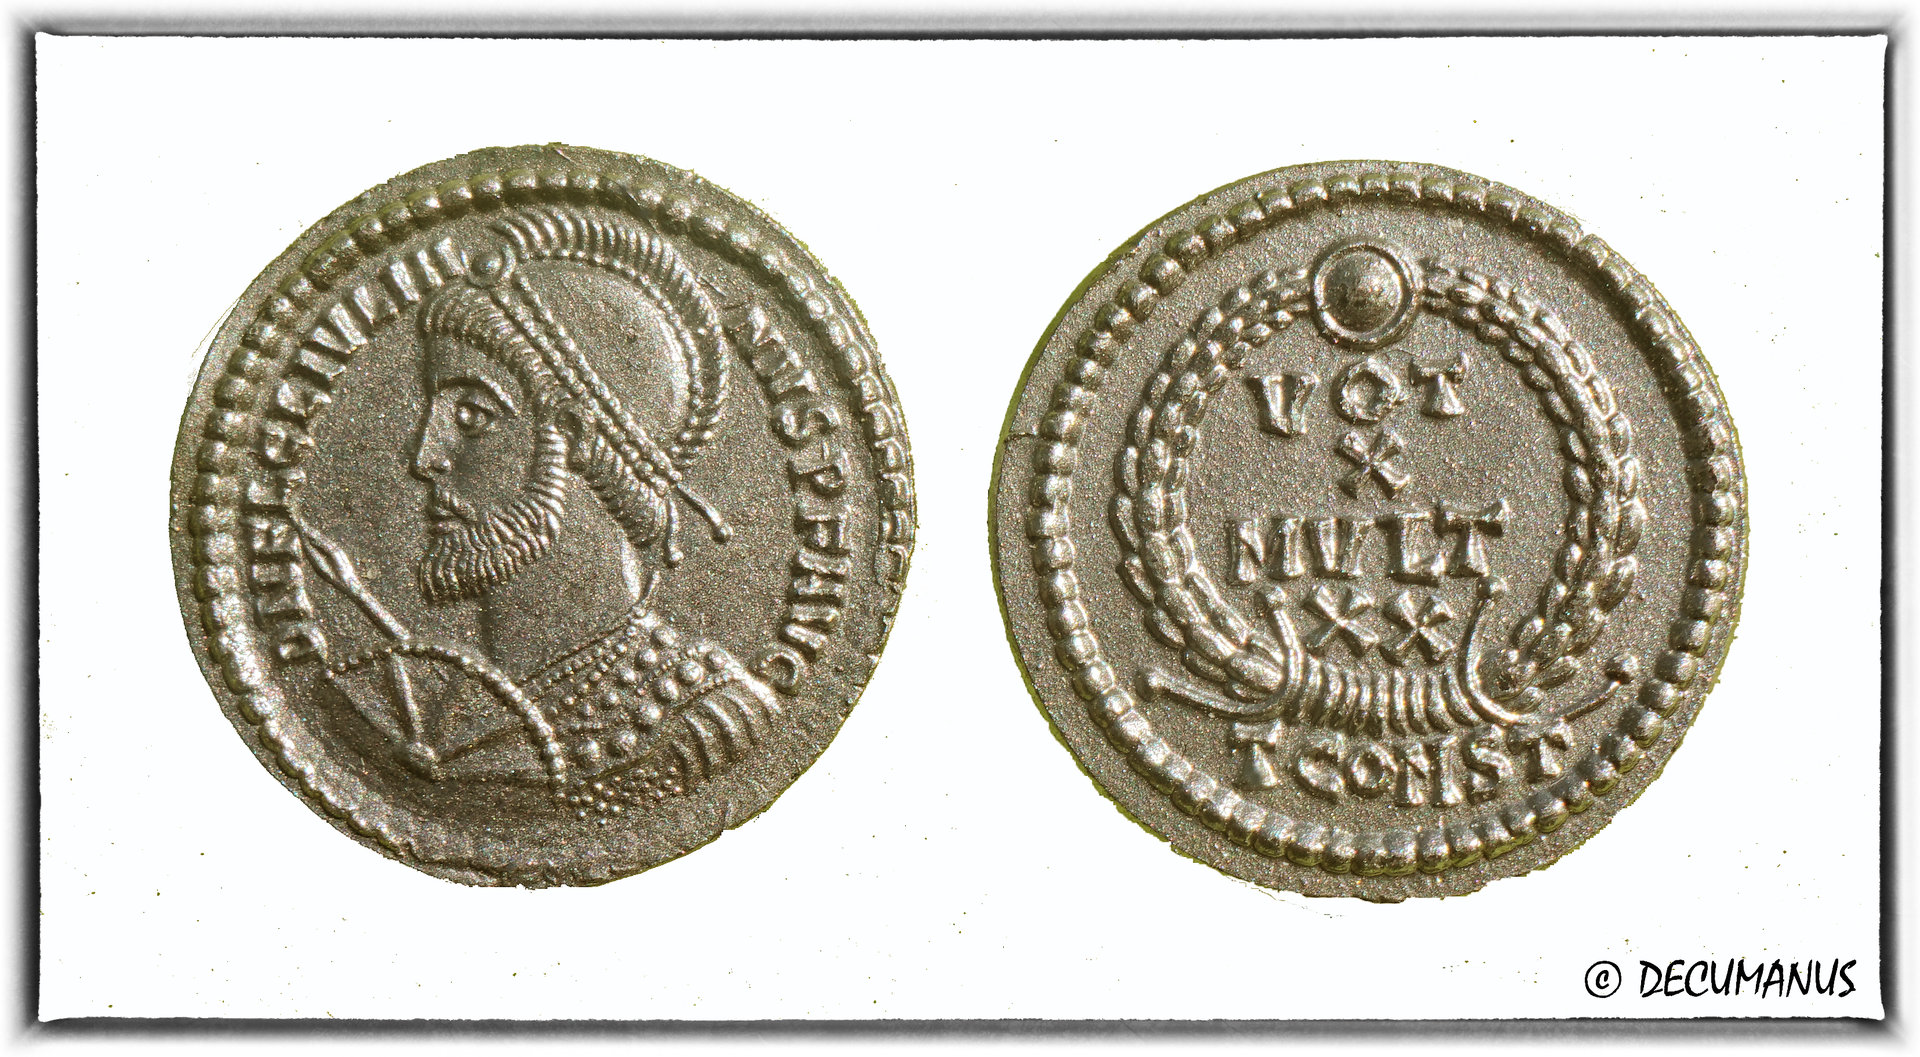 AES 3 OF JULIAN II - REPRODUCTION